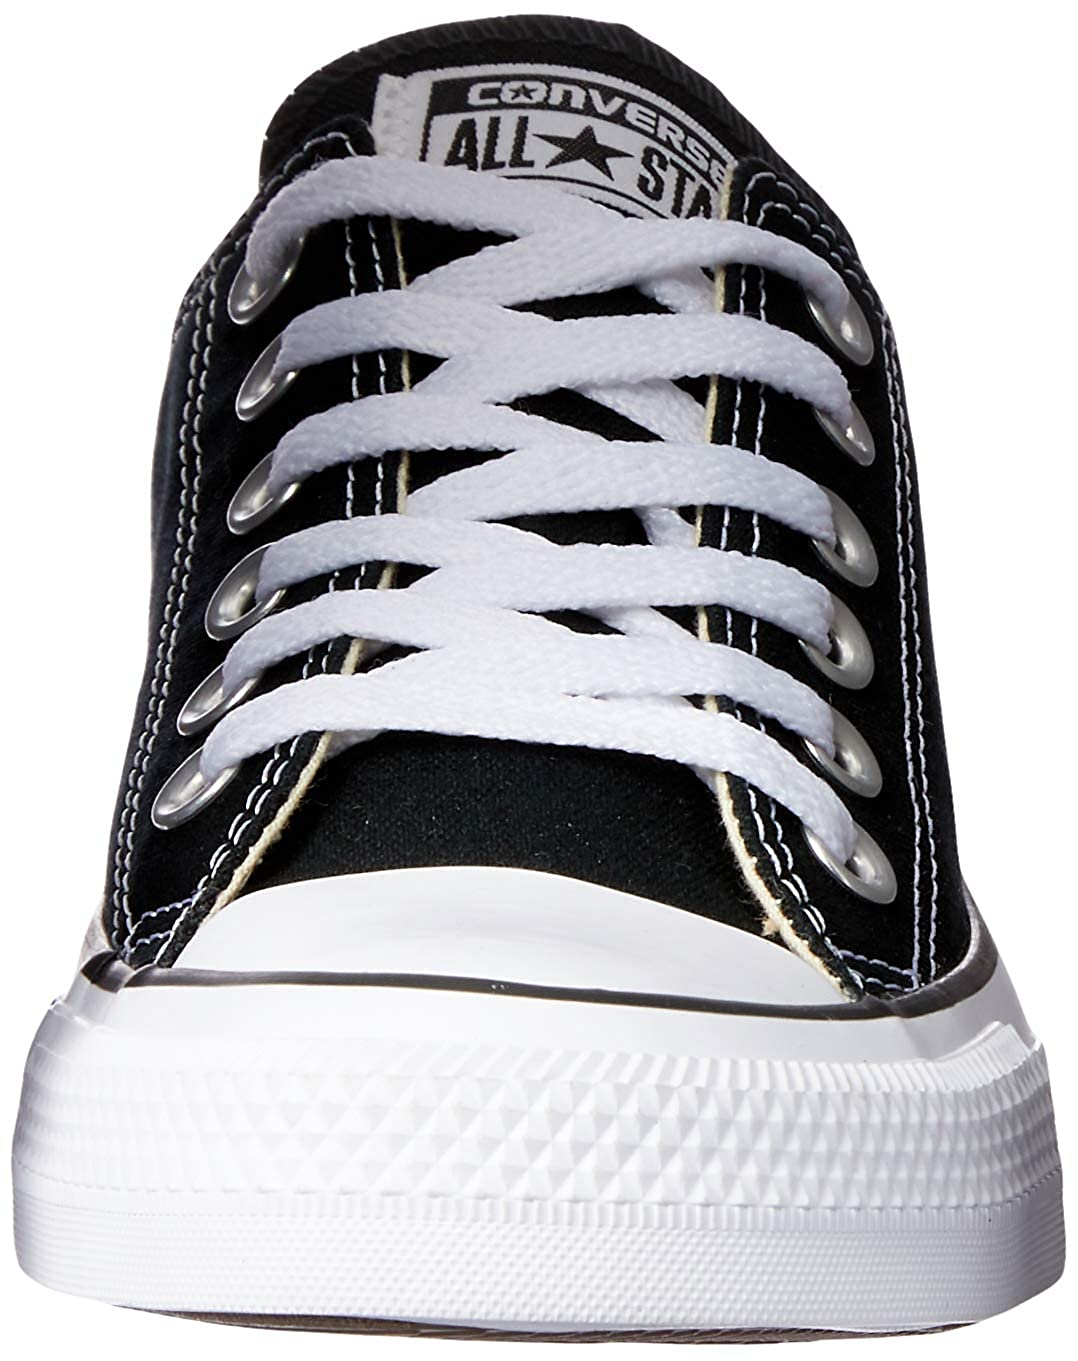 Converse AS Hi Can charcoal 1J793 Unisex-Erwachsene Turnschuhe Turnschuhe Turnschuhe  6aa682